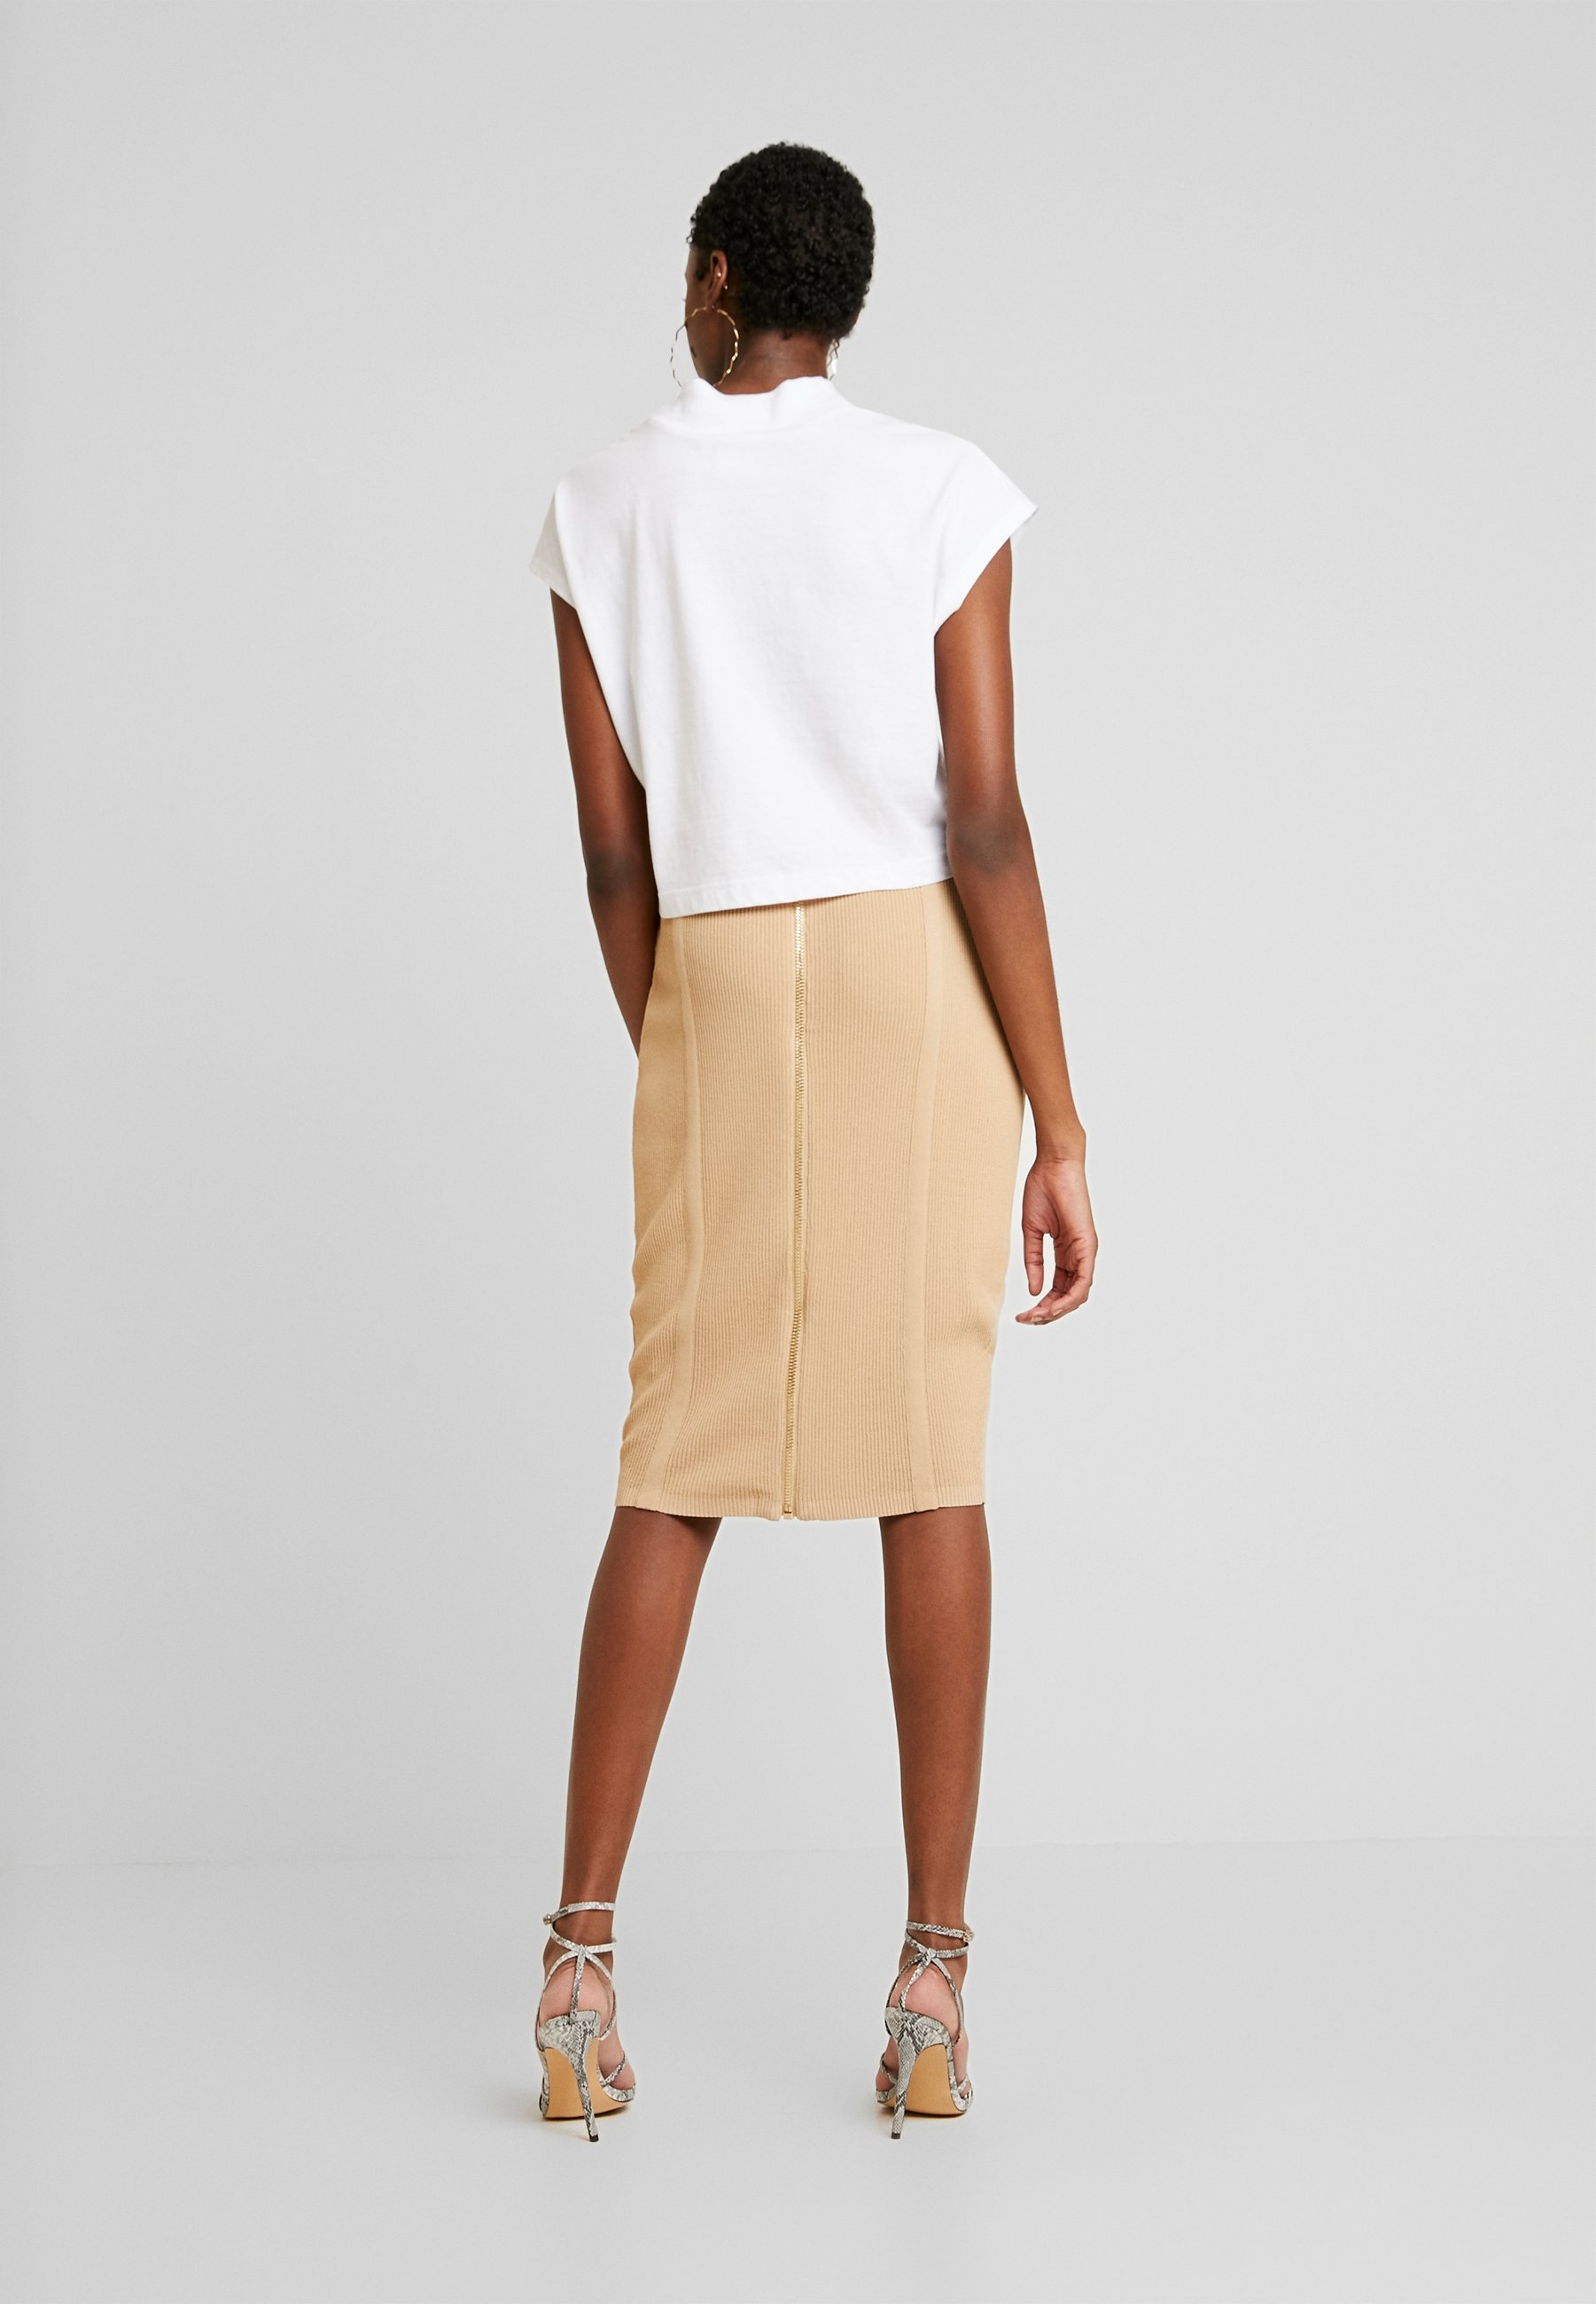 4th & Reckless Orla Skirt - Pennkjol Camel